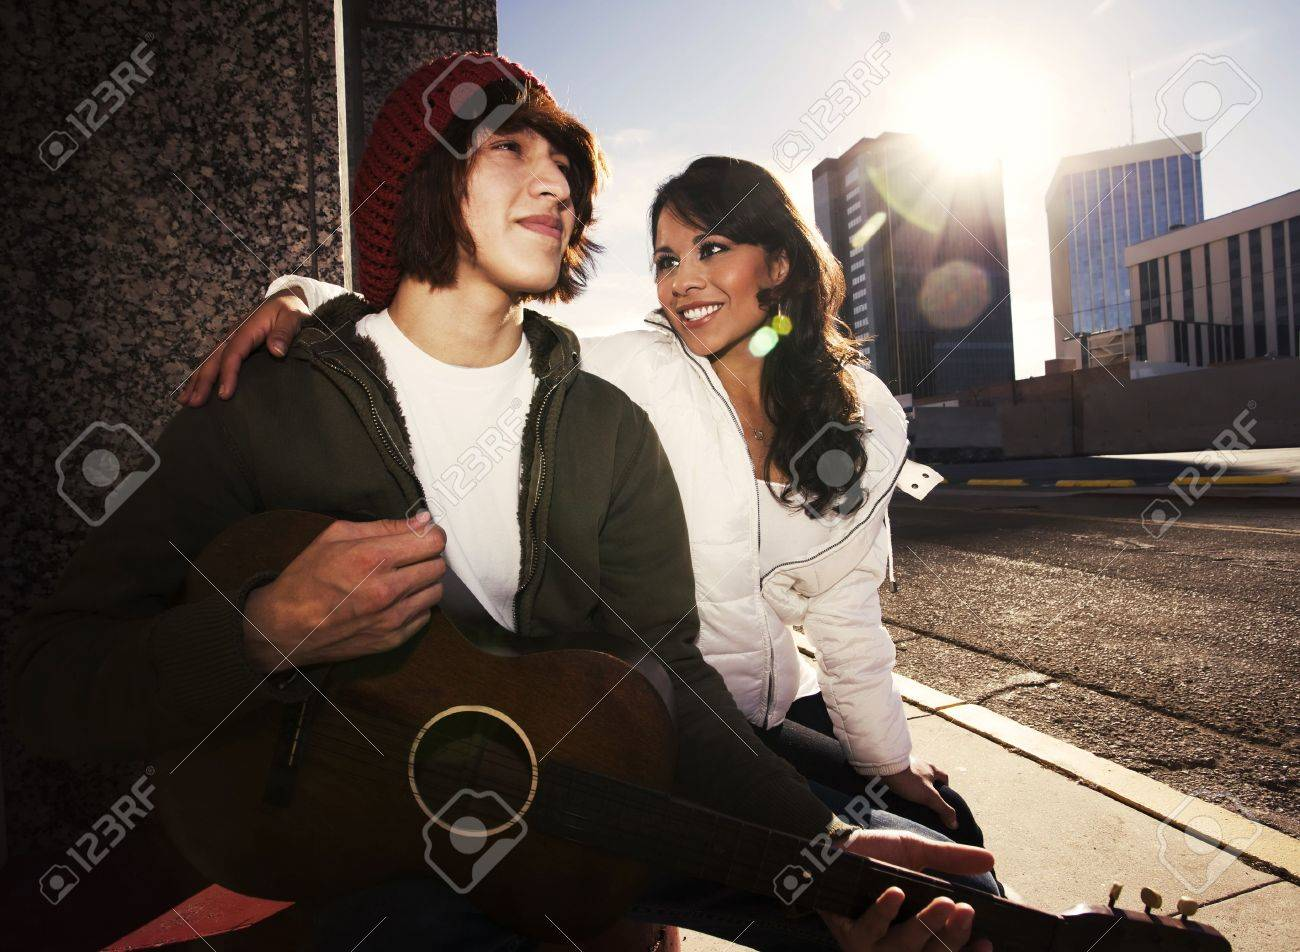 Hispanic Musician And Latina Girlfriend Downtown At Sundown Stock Photo 4103856